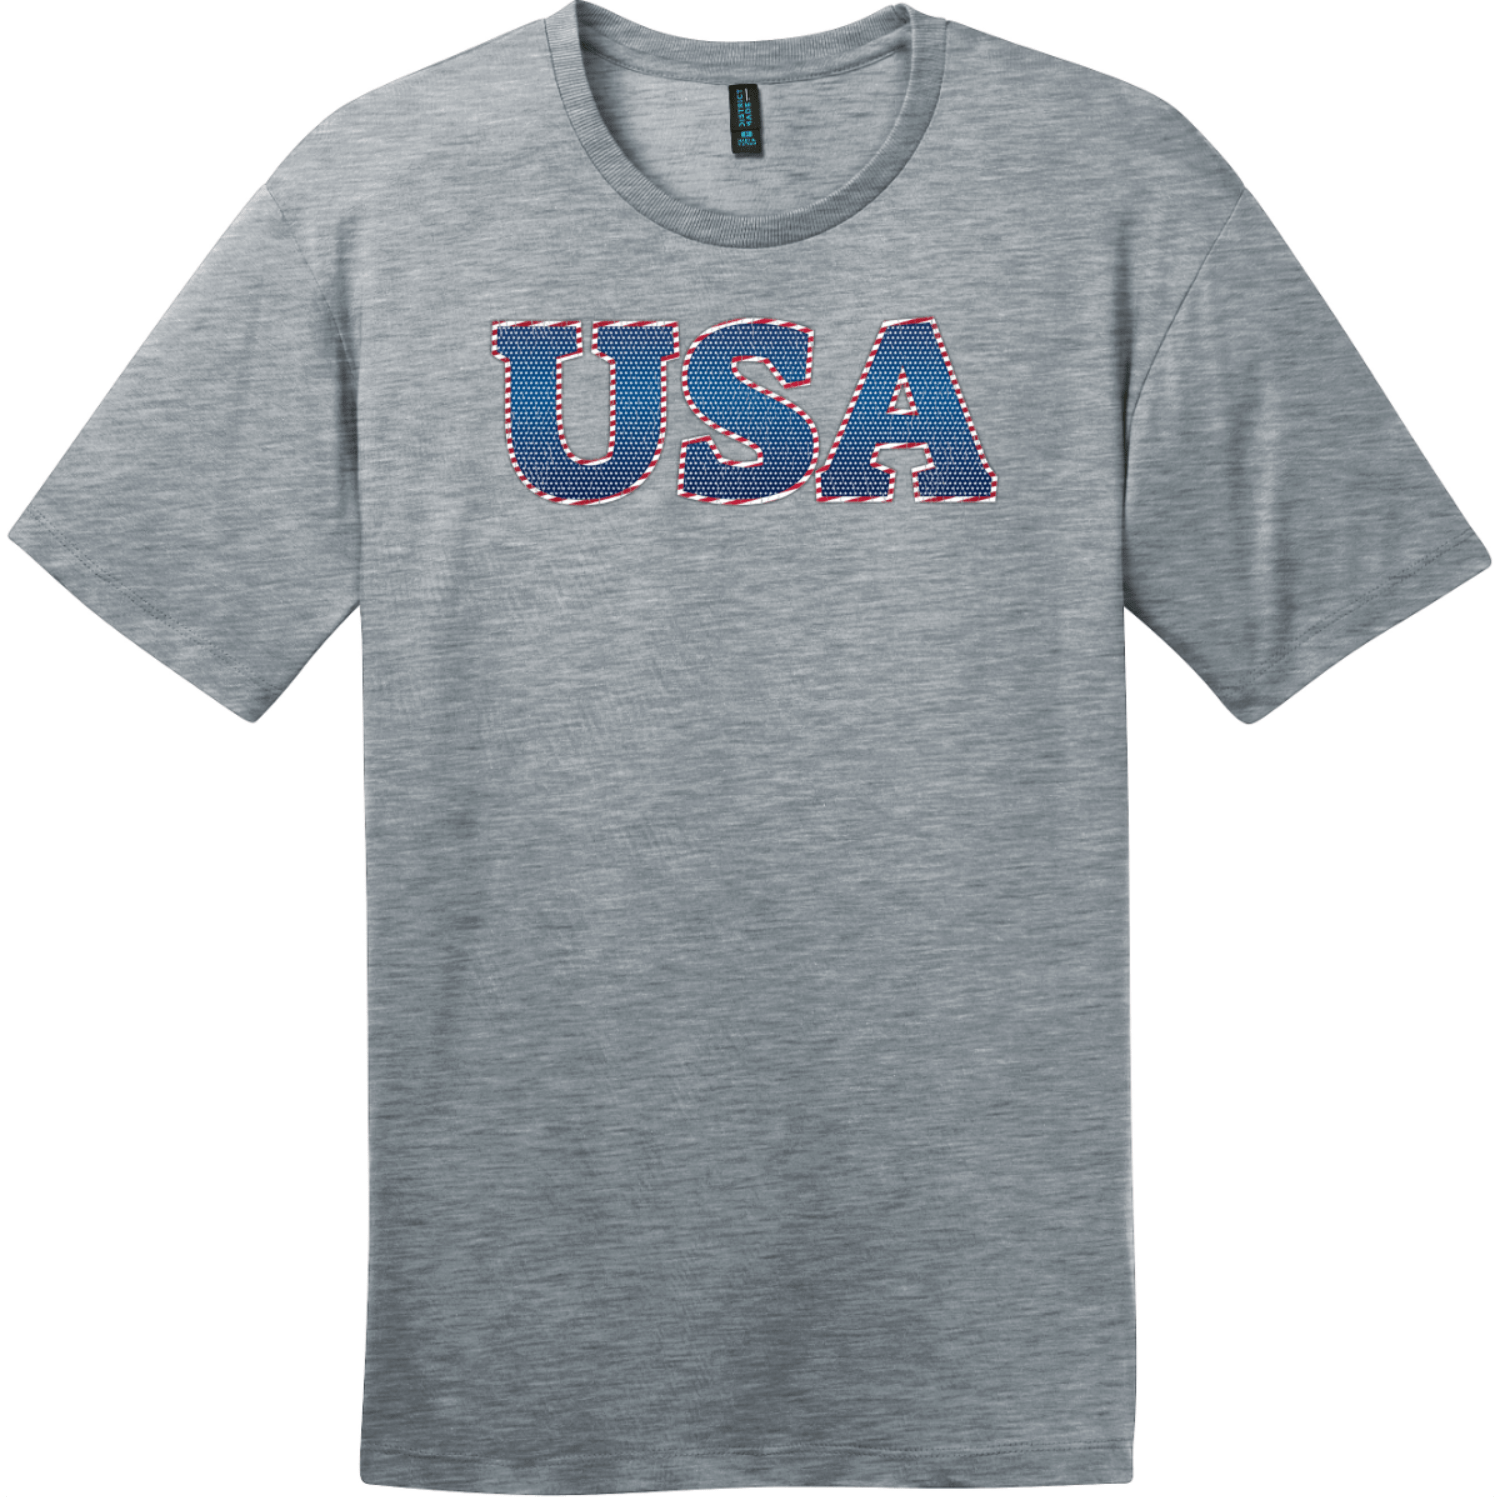 USA Starts And Stripes Lettering T-Shirt Heathered Steel District Perfect Weight Tee DT104